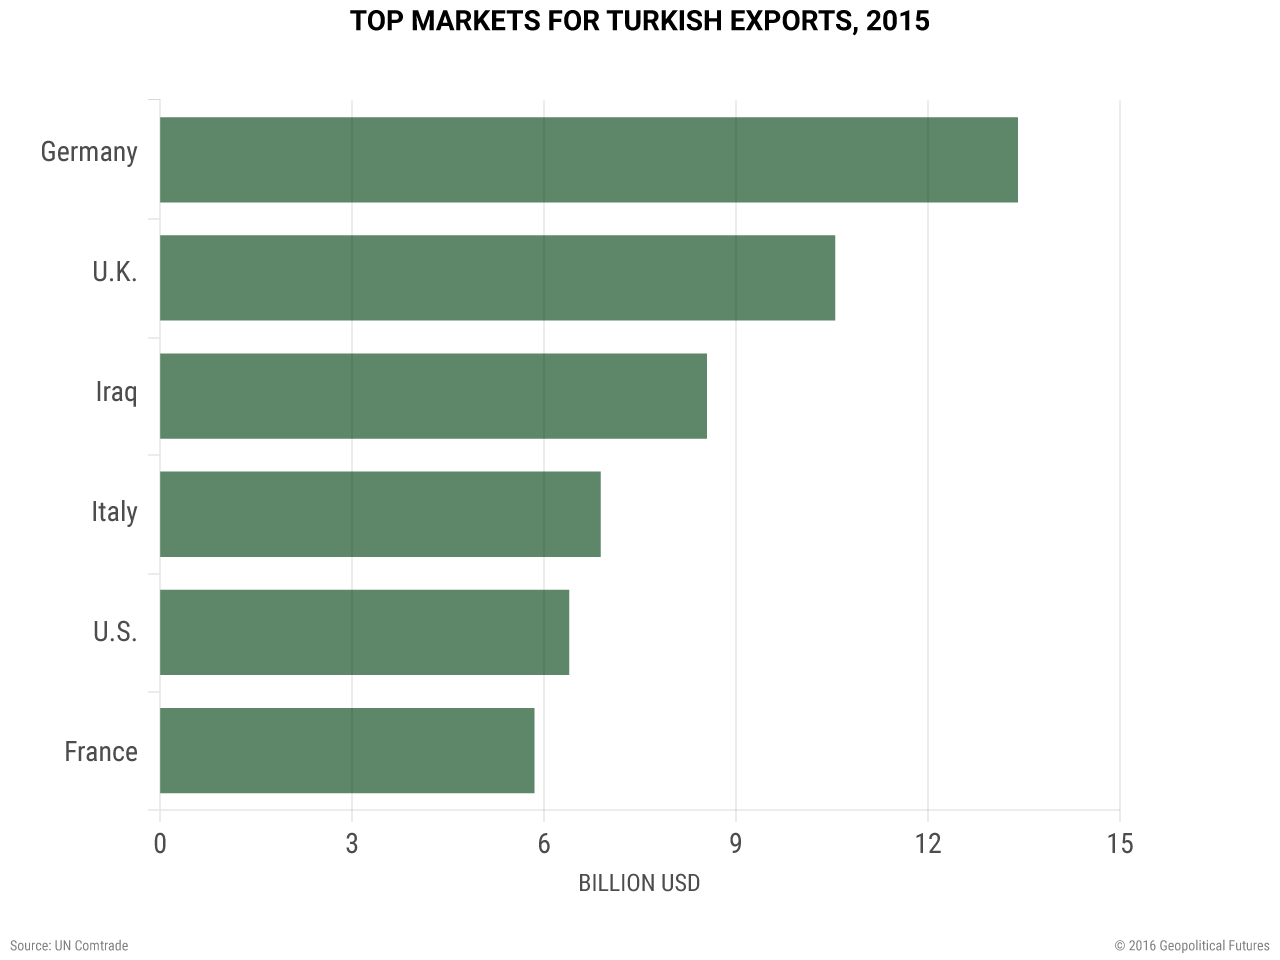 Top Markets for Turkish Exports, 2015